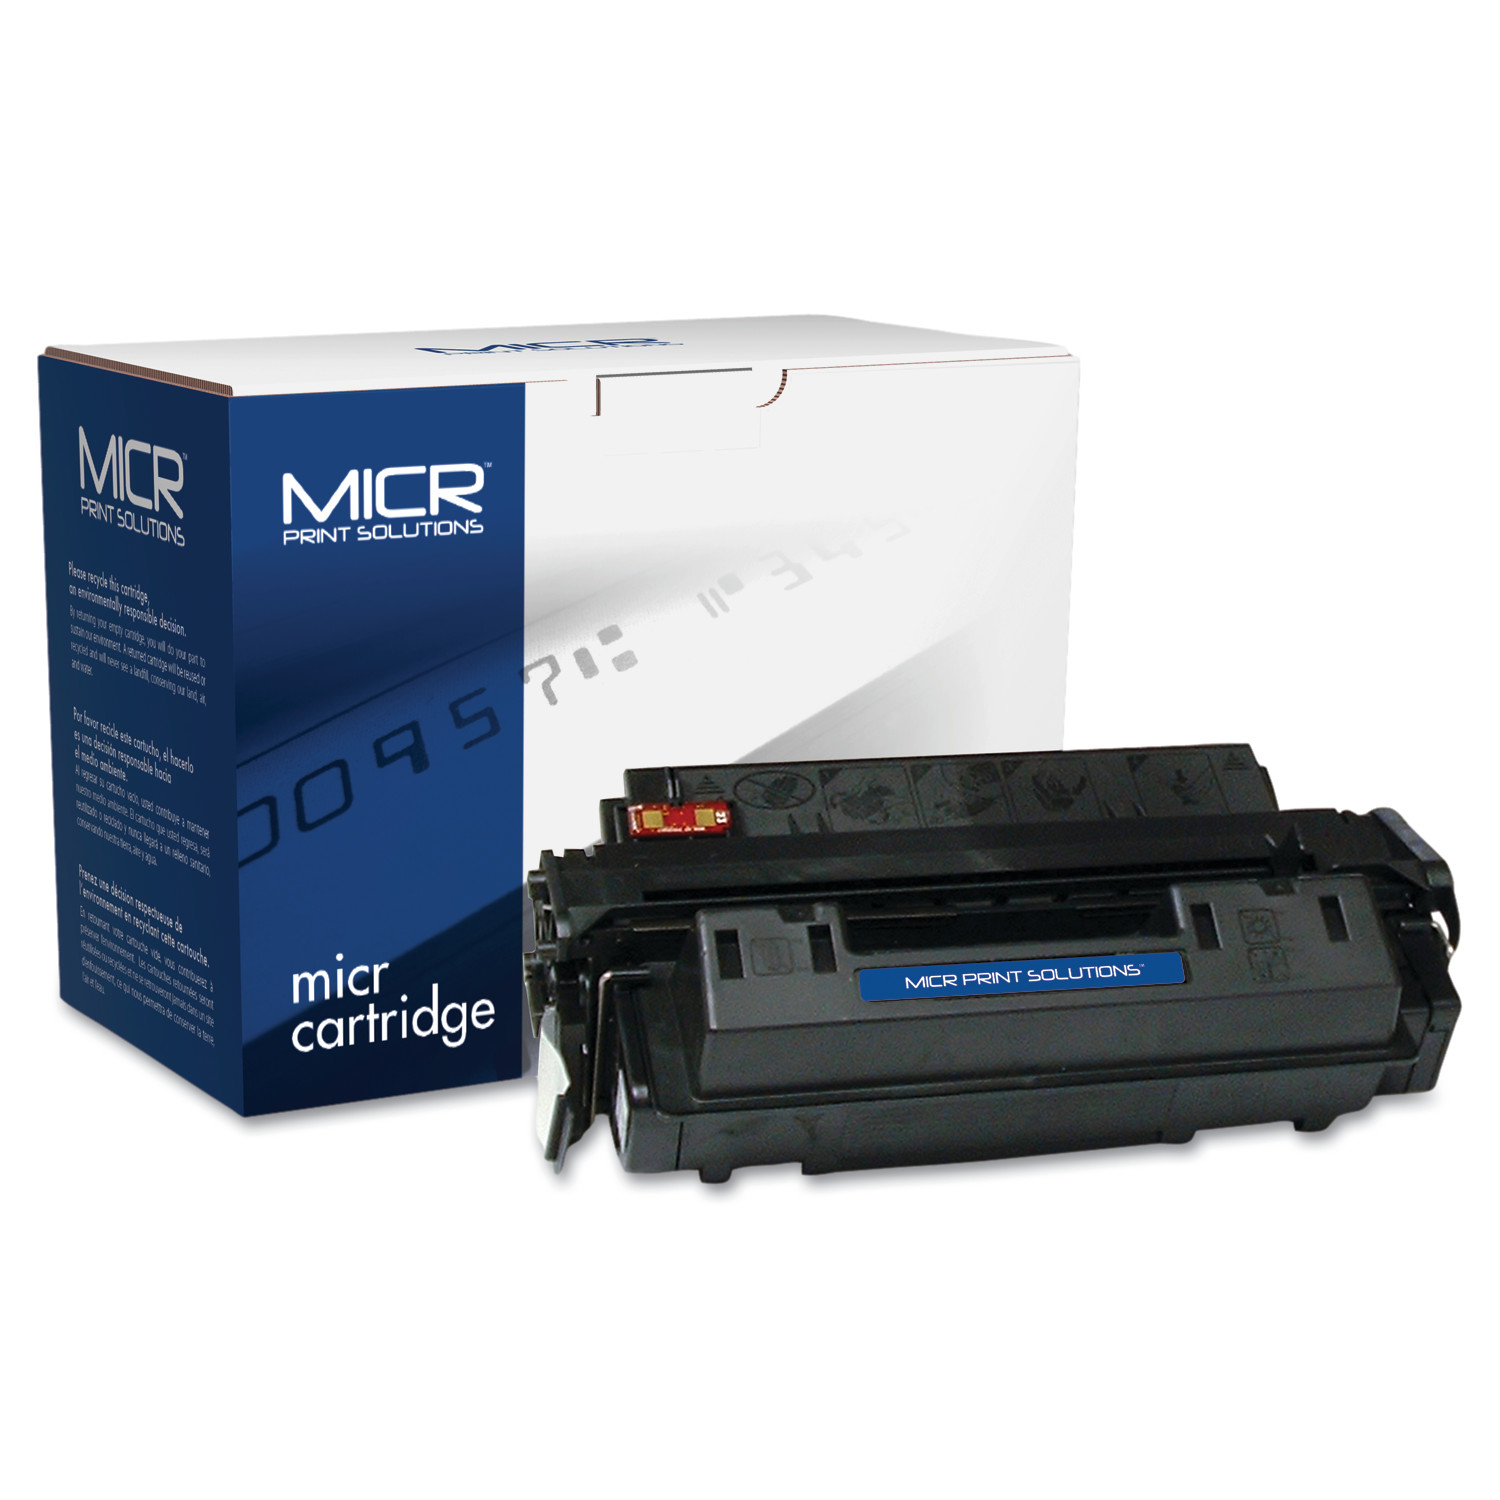 MICR Print Solutions Compatible with Q2610AM MICR Toner, 6,000 Page-Yield, Black